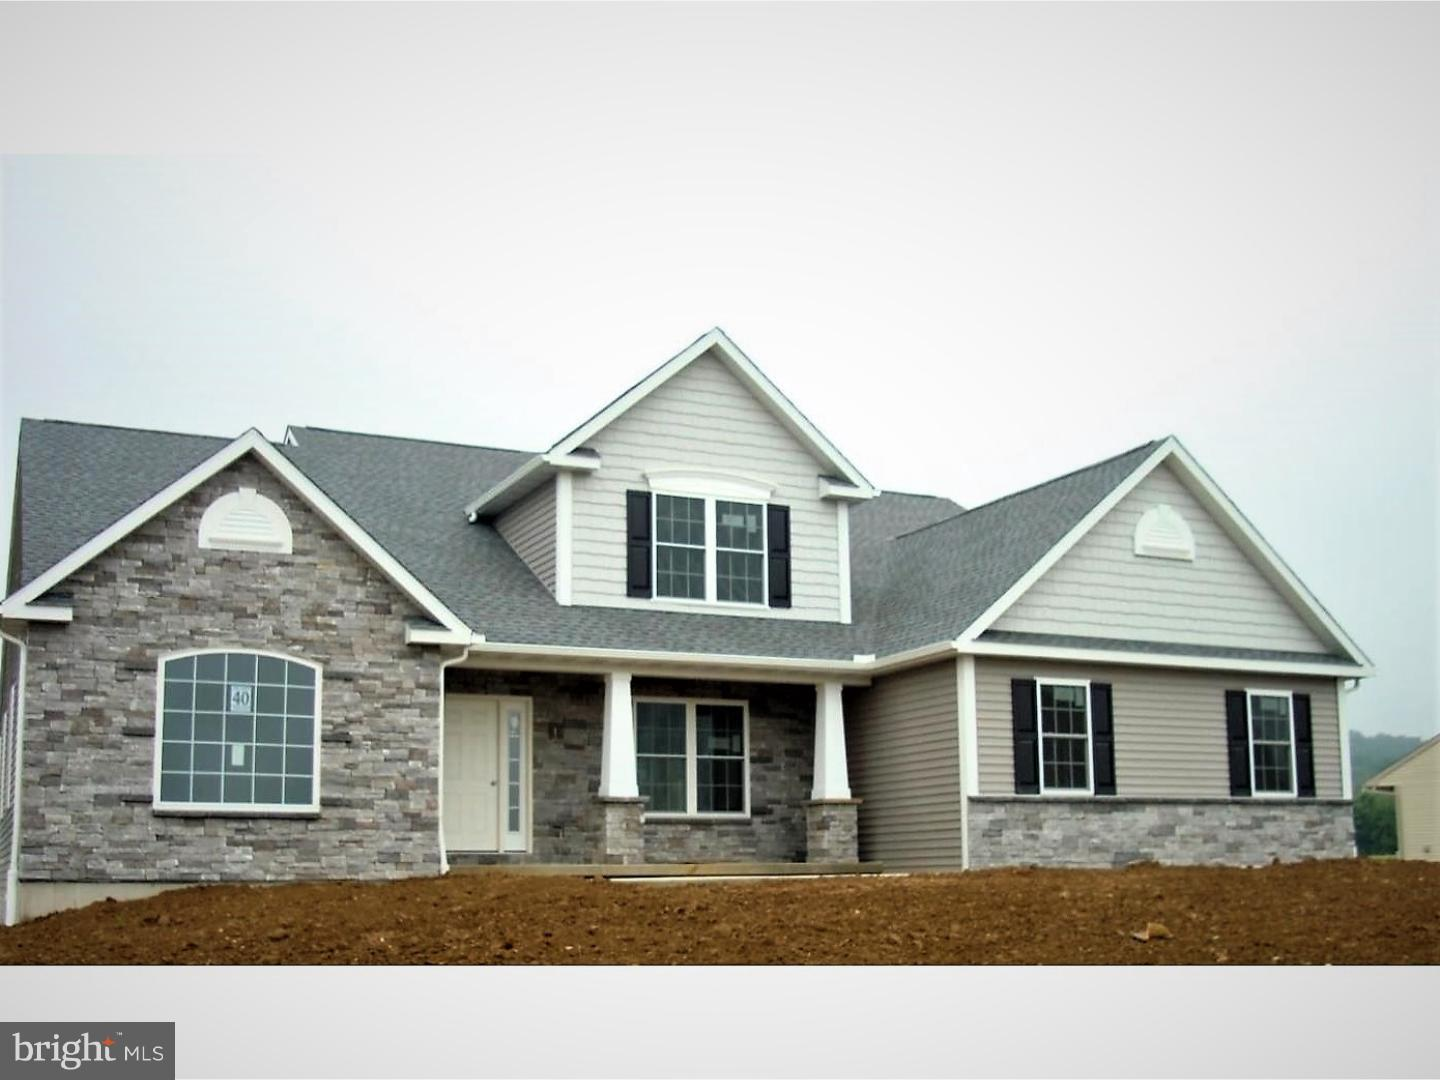 20 MIDDLETOWN ROAD, FLEETWOOD, PA 19522